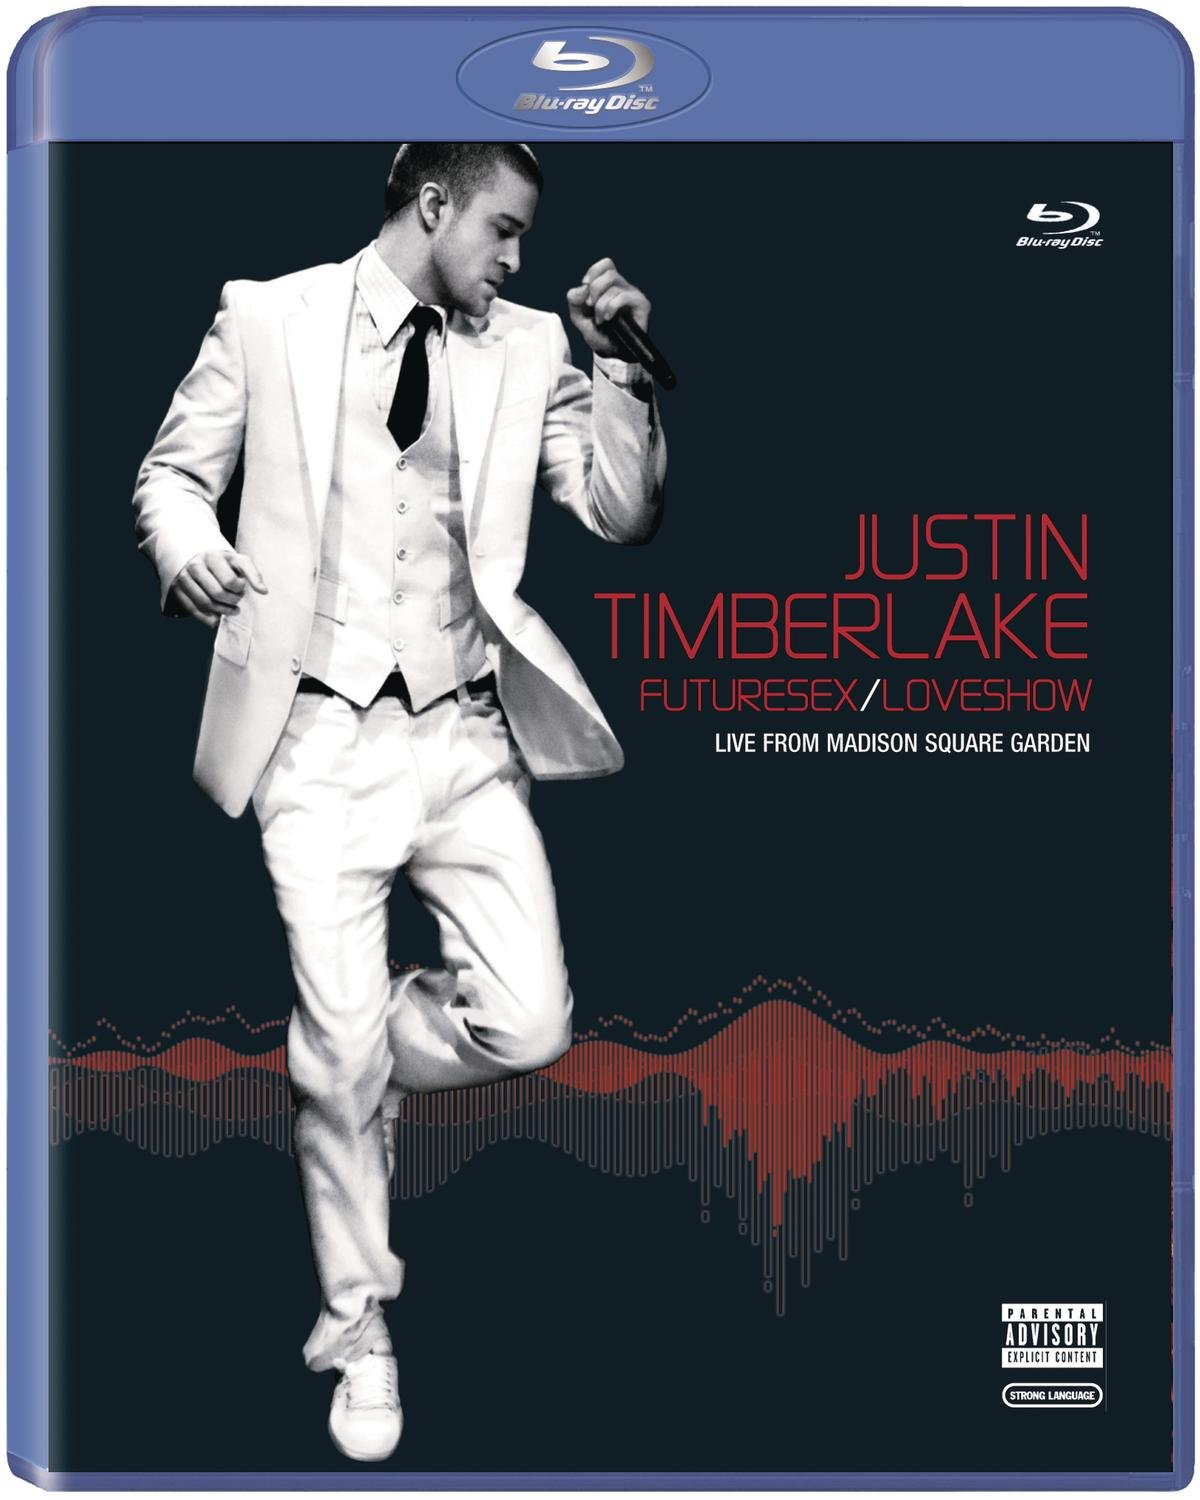 Futuresex / Loveshow - Live from Madison Square Garden [Blu-ray] by Sony Legacy